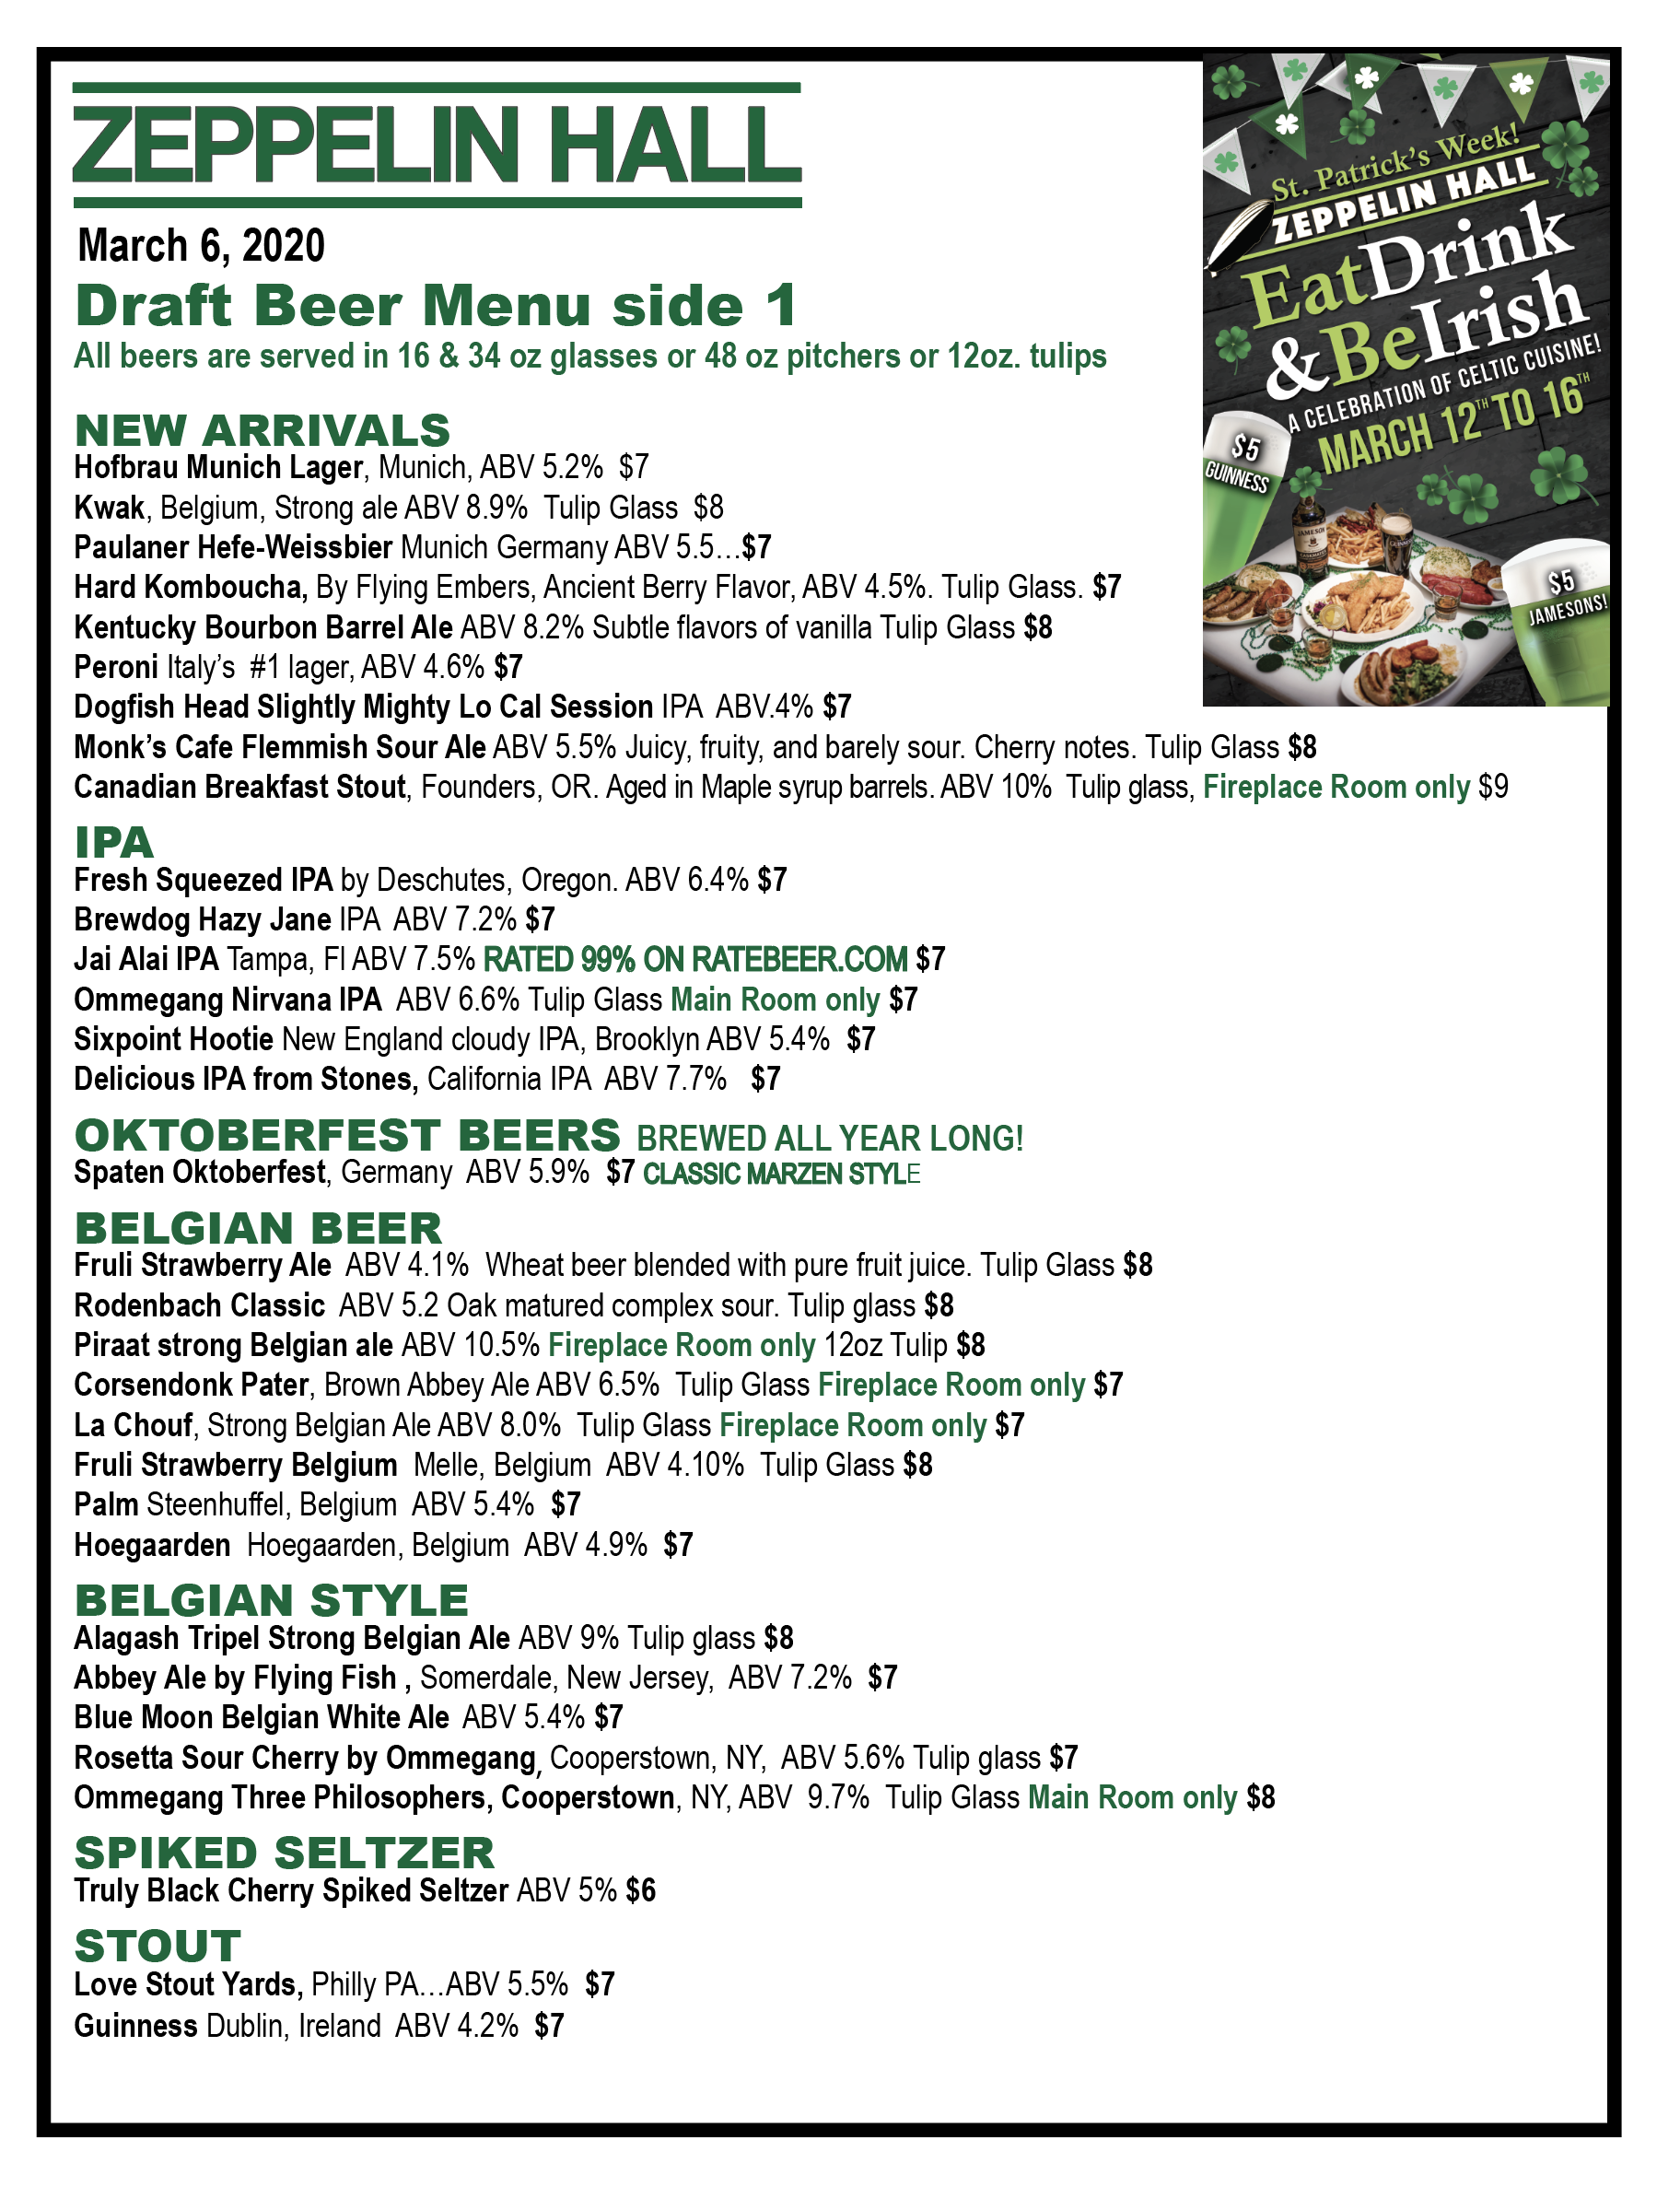 Beer Menu Side 1